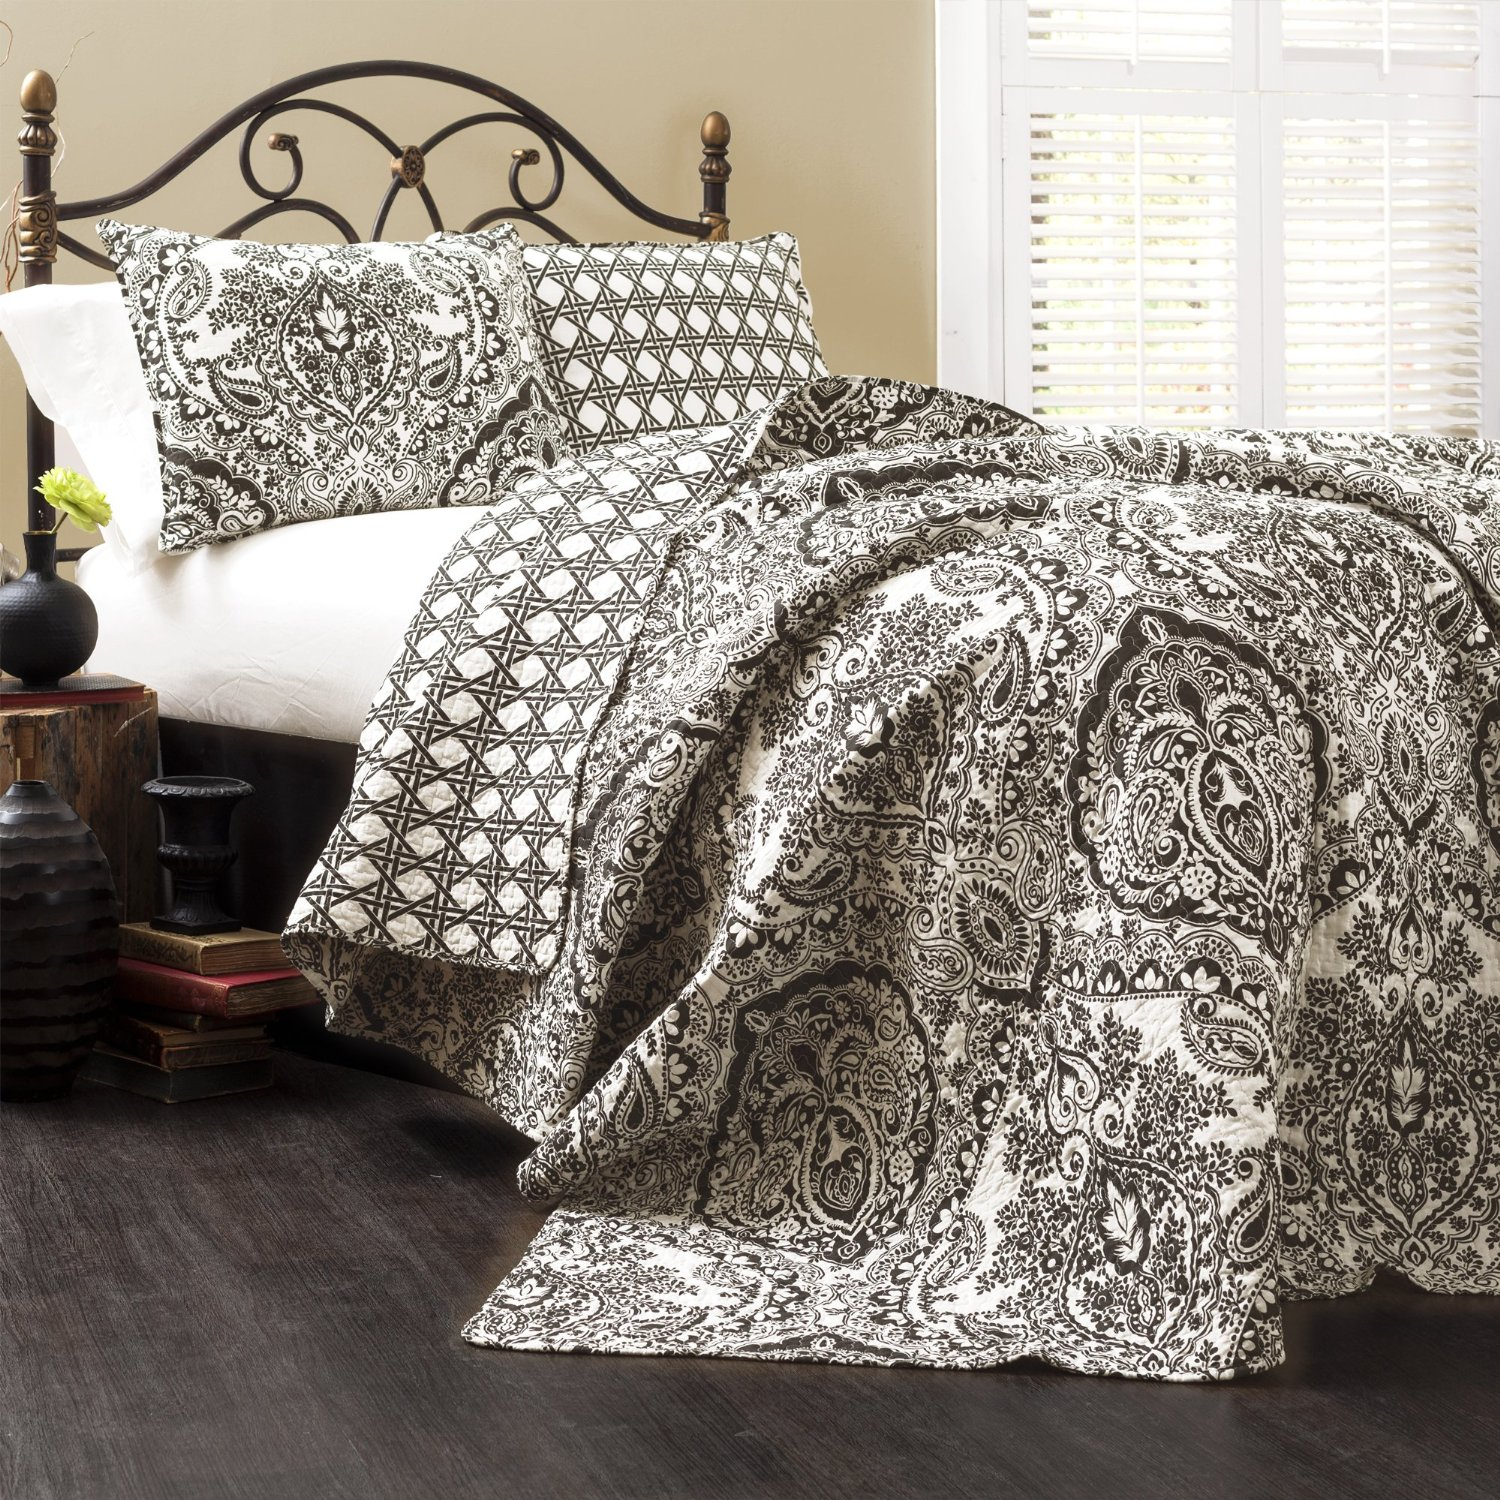 Black And Ivory Comforter Amp Bedding Sets